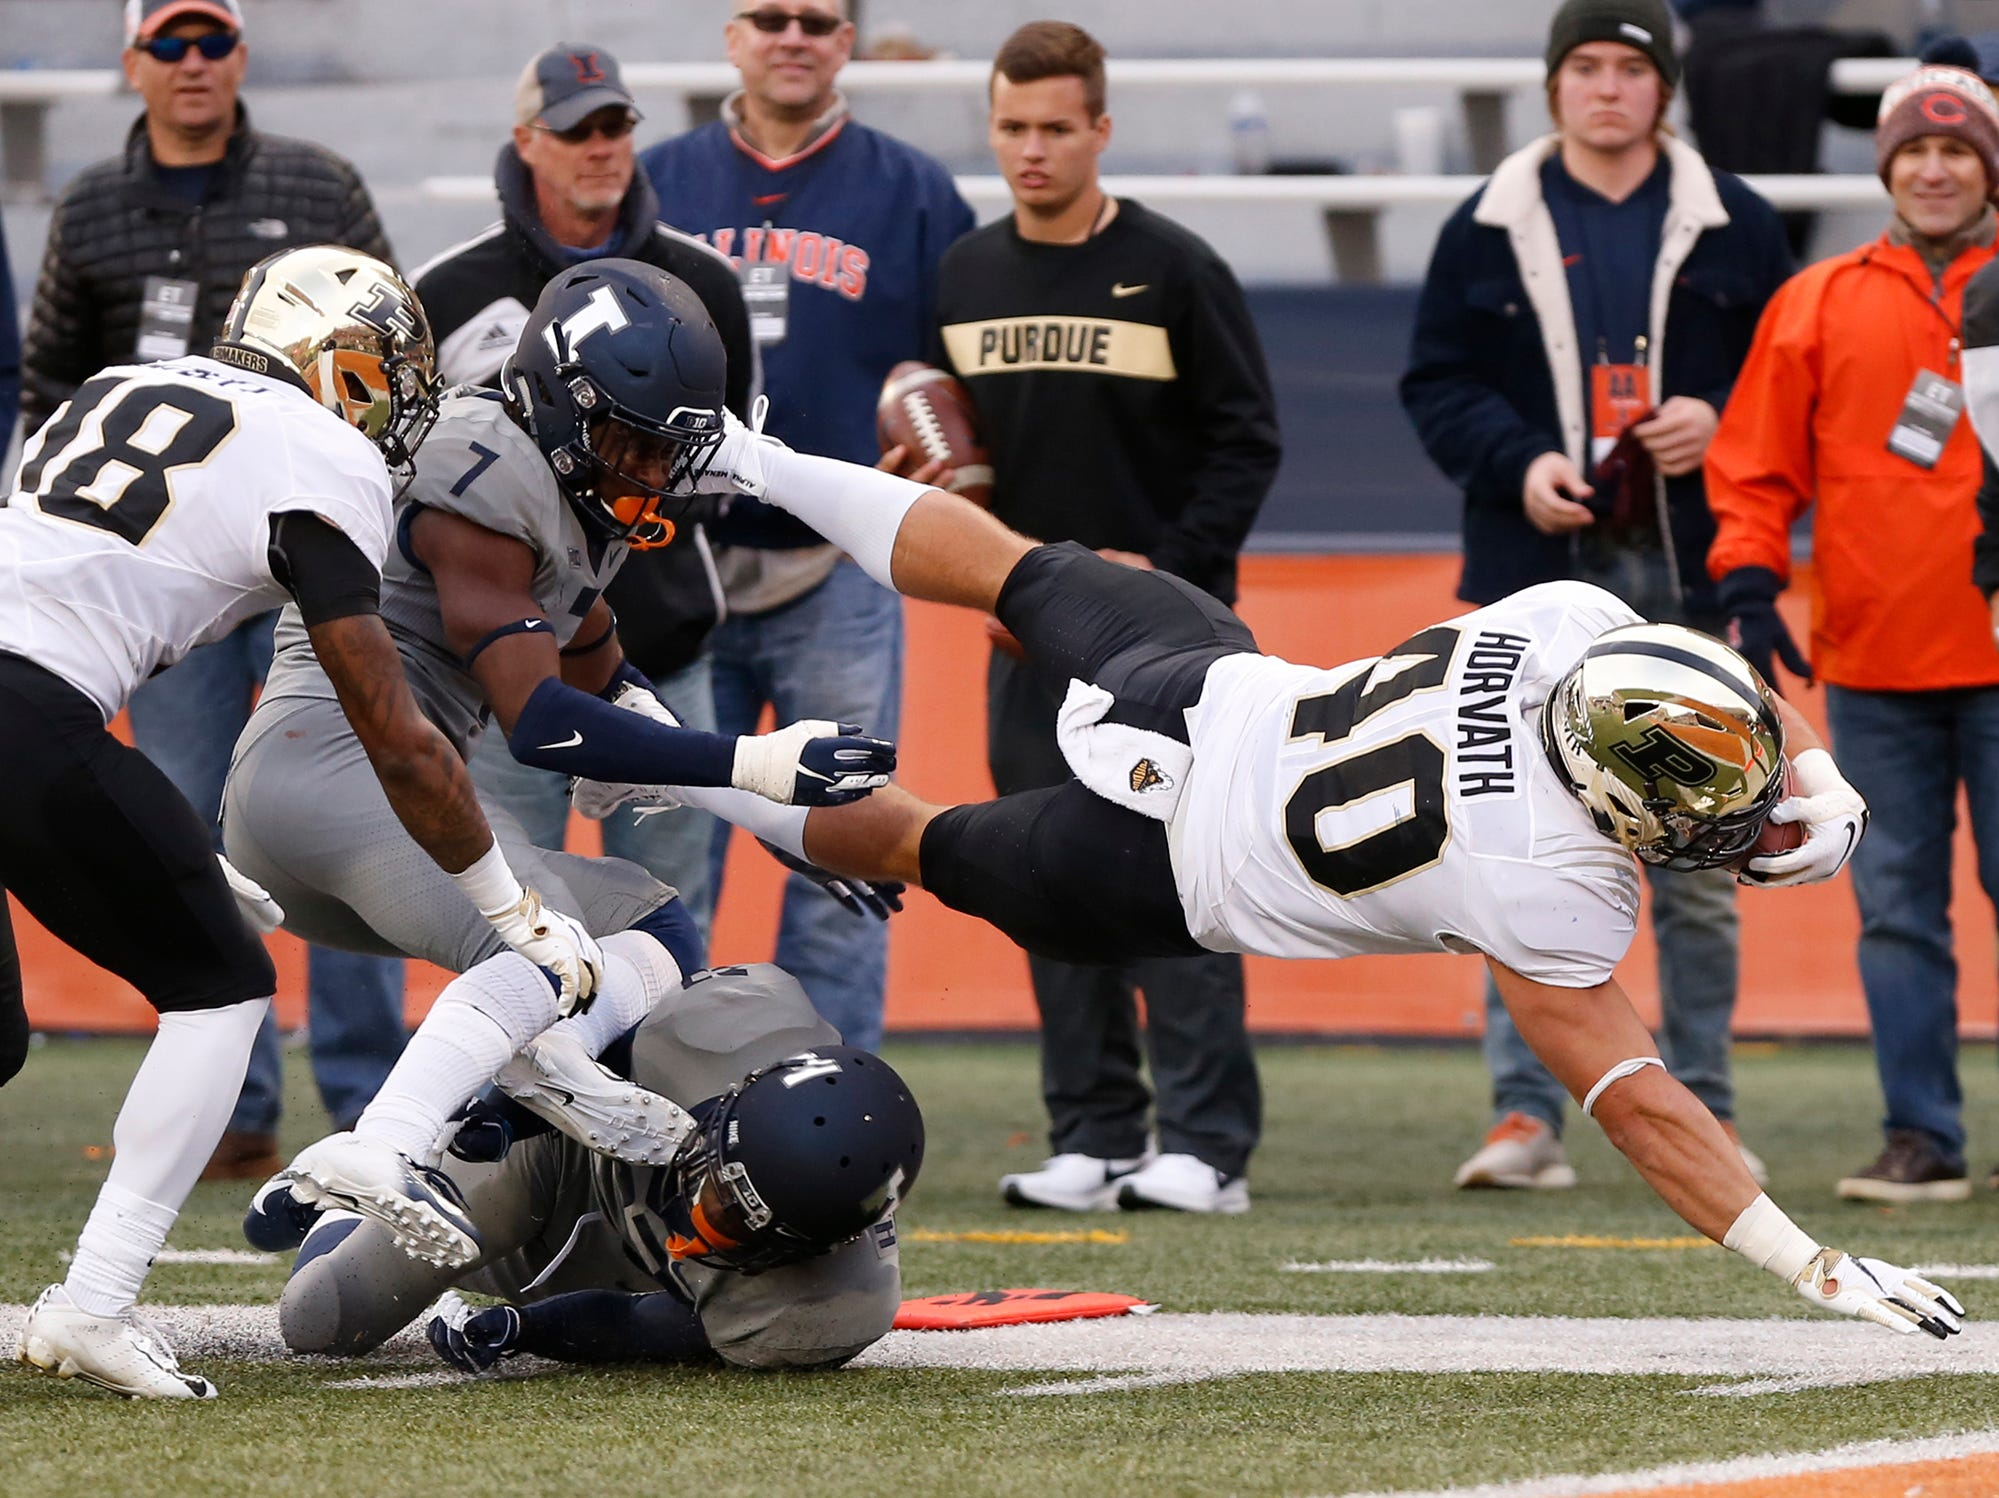 Alexander Horvath of Purdue lunges for the goal line, but comes up short on a second half carry against Illinois Saturday, October 13, 2018, in Champaign, Illinois. Purdue thumped Illinois 46-7.